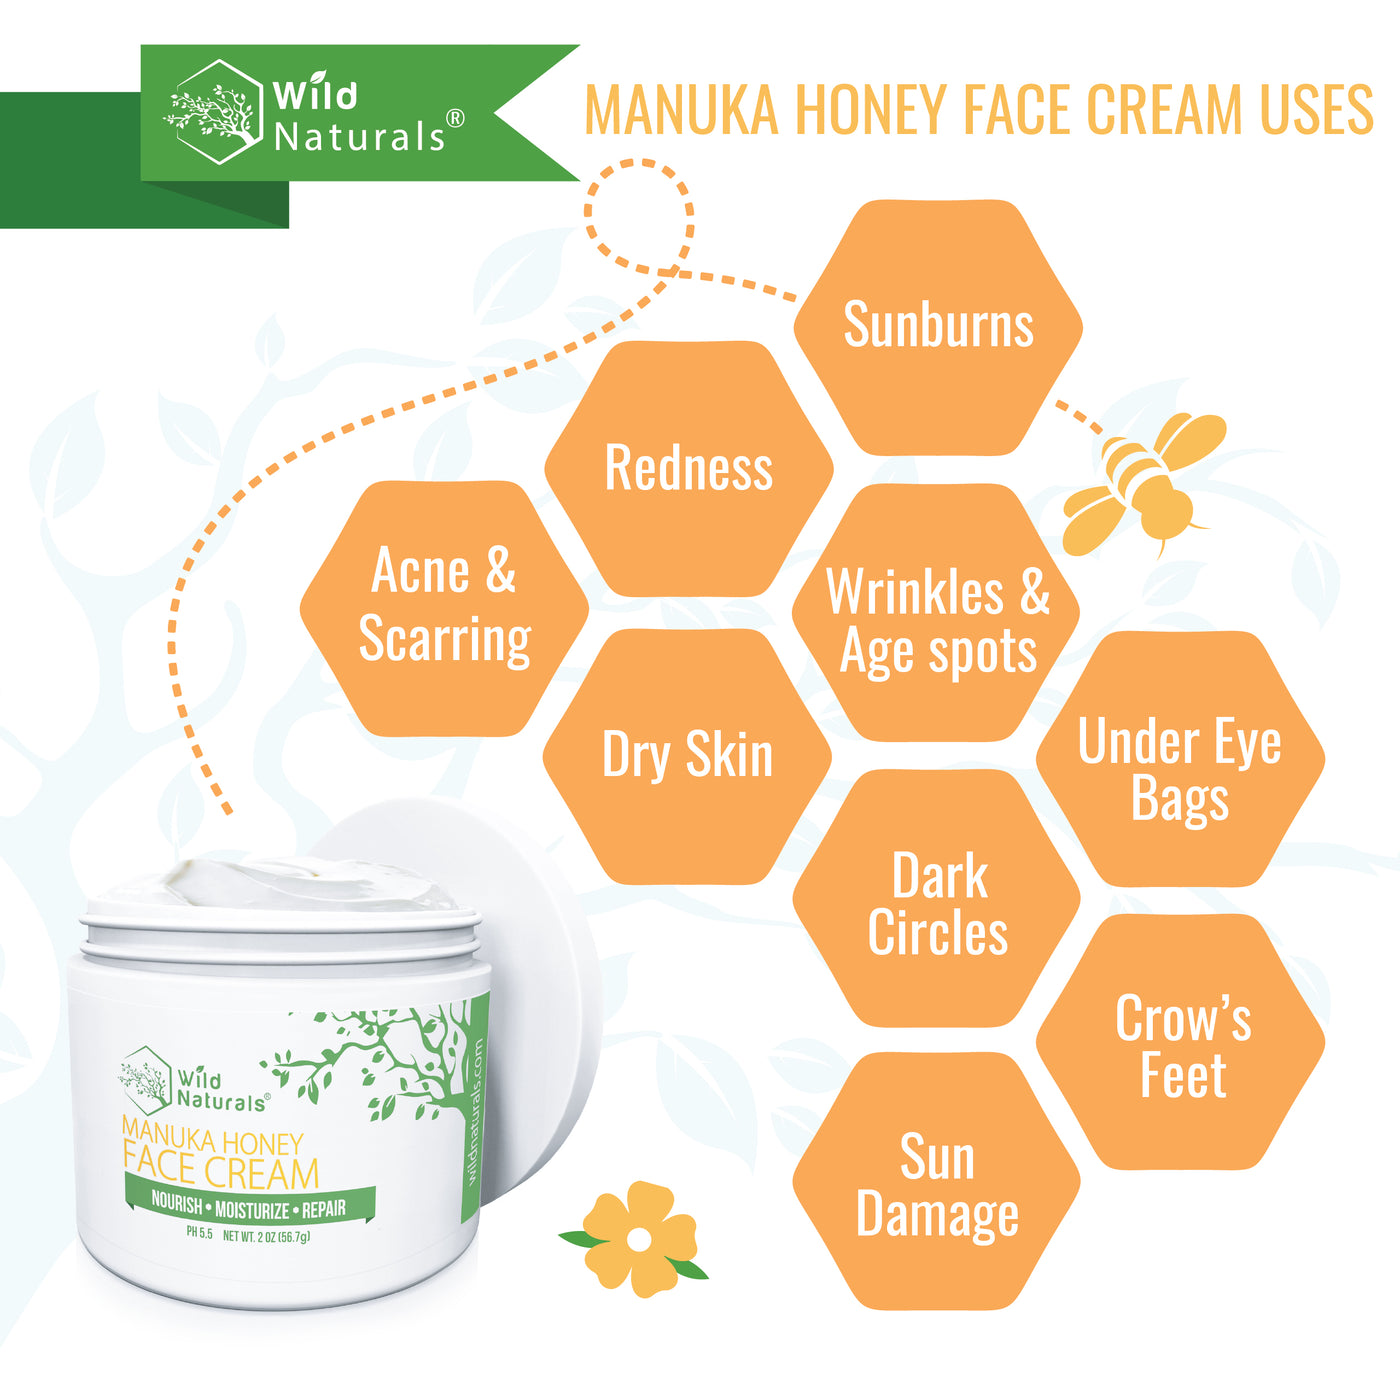 Manuka Honey Face Cream